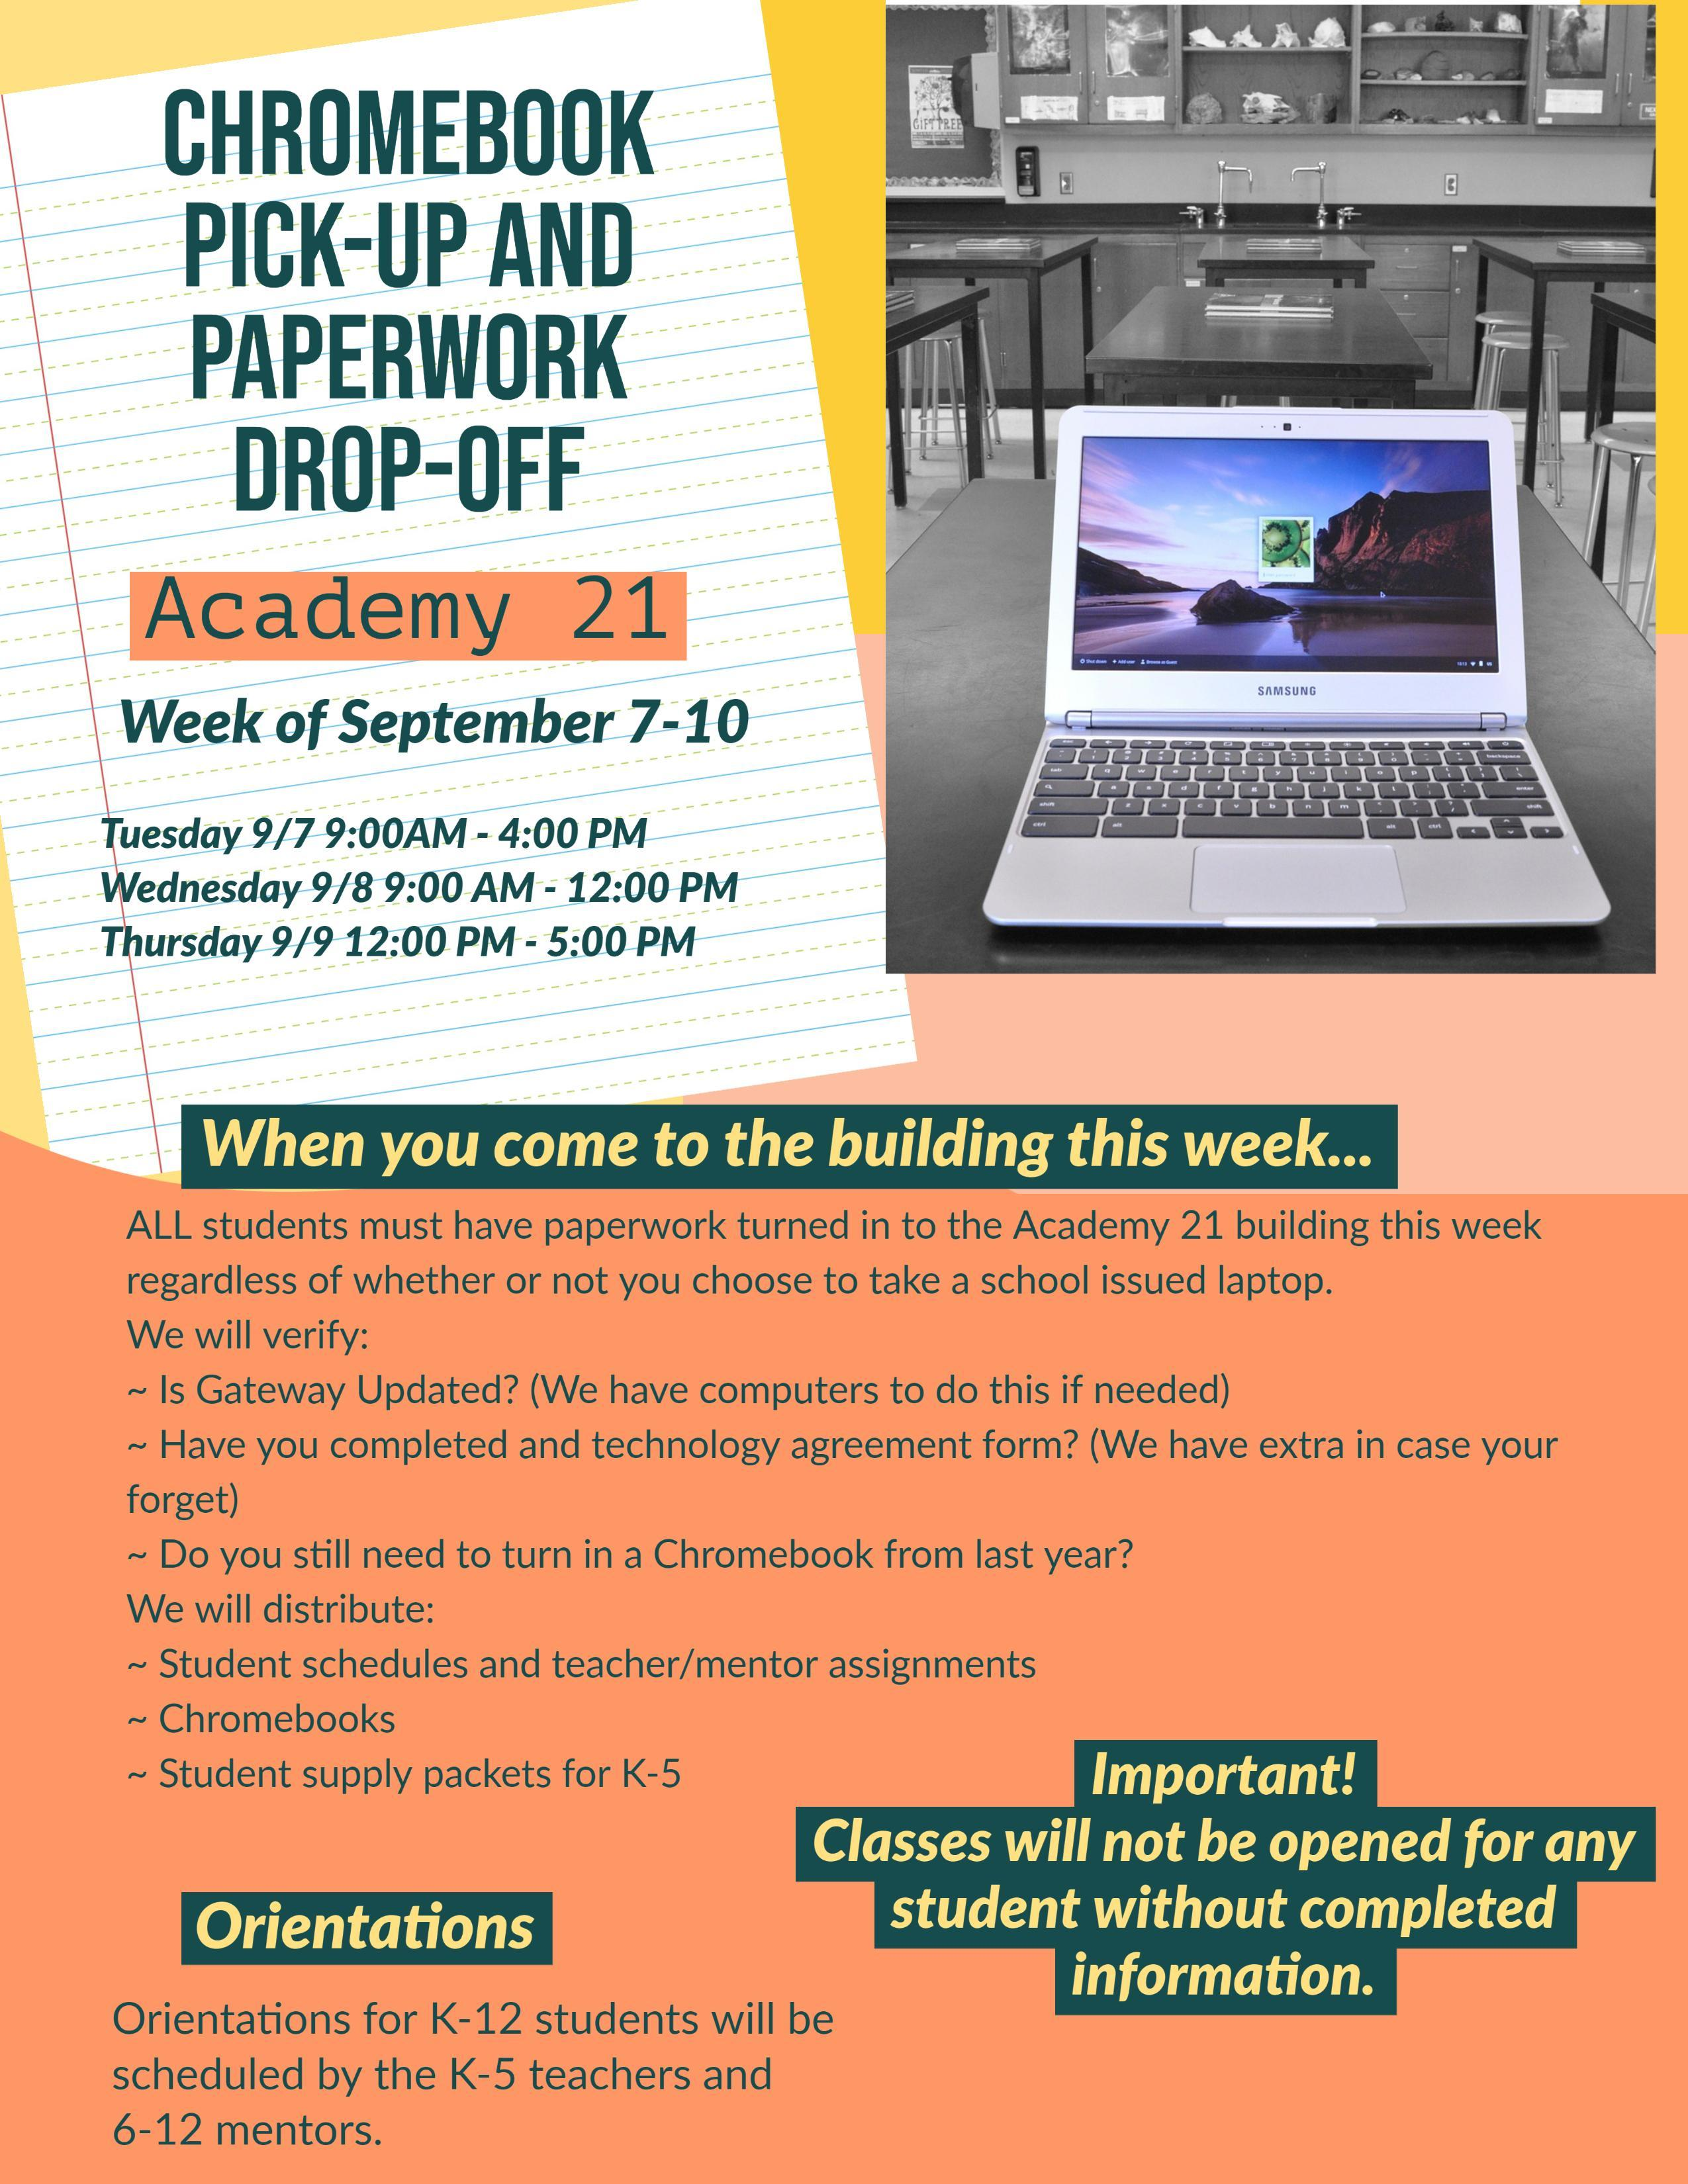 Chromebook pick up and paperwork drop off